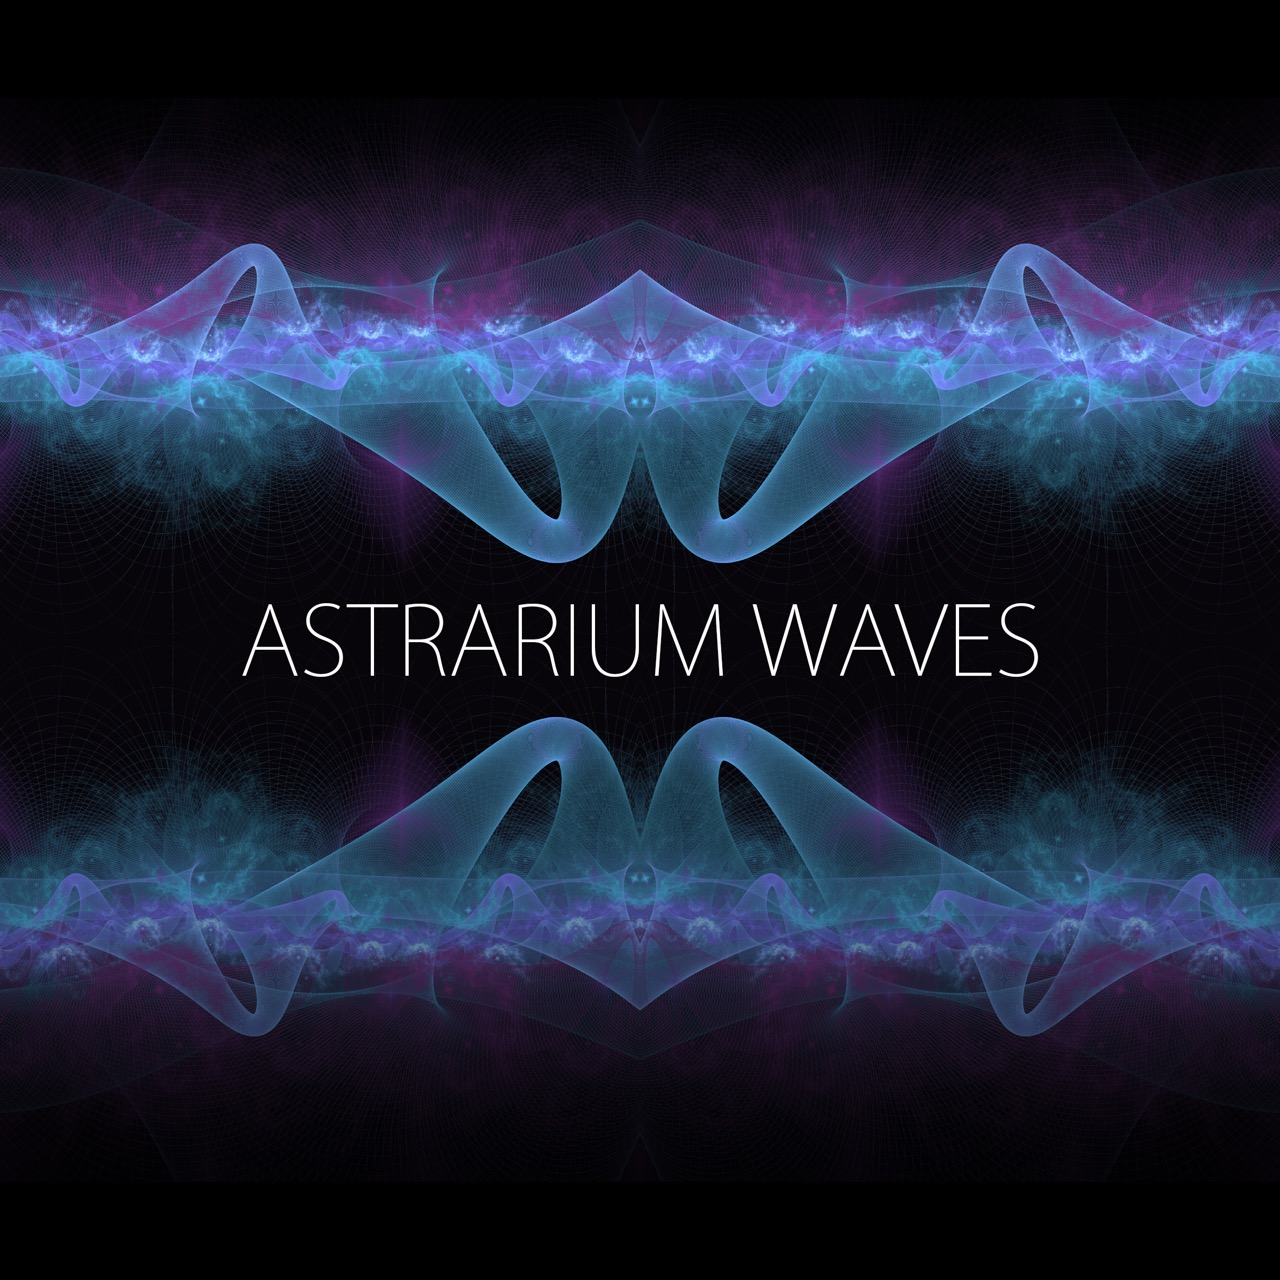 Sample+pack+ +astrarium+waves(2362x2362)